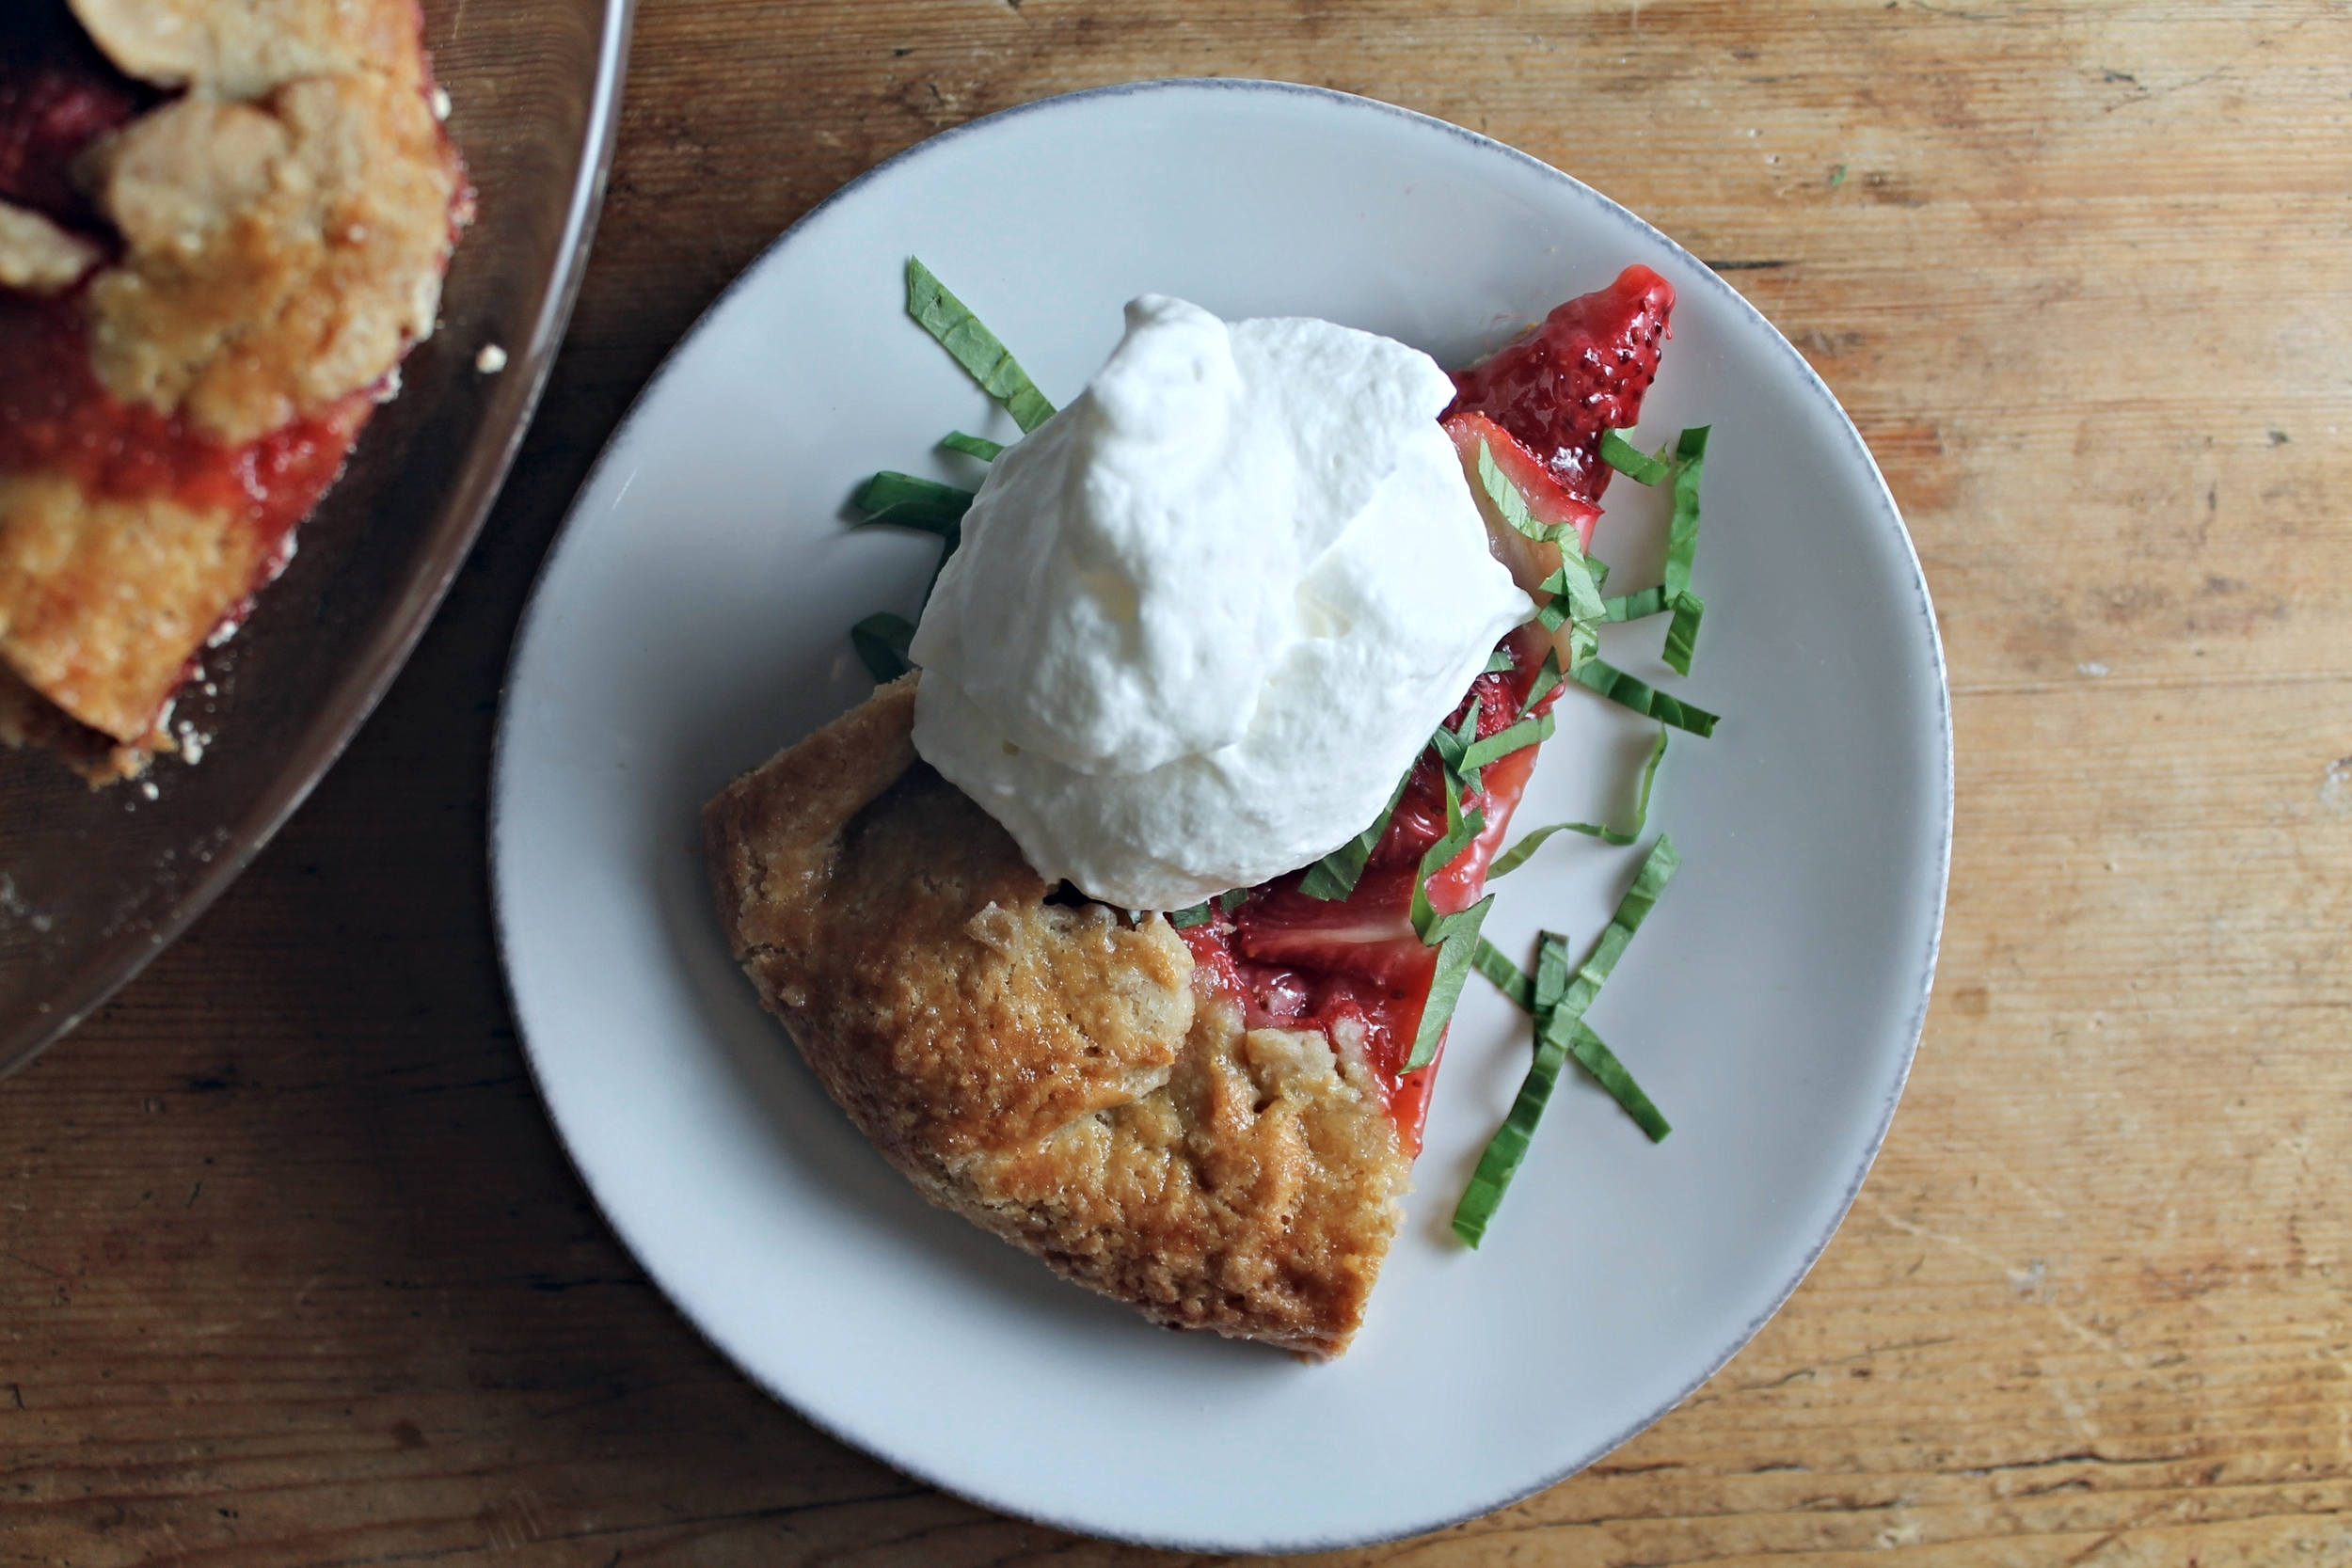 Strawberry Crostata + Basil Whipped Cream | www.hungryinlove.com